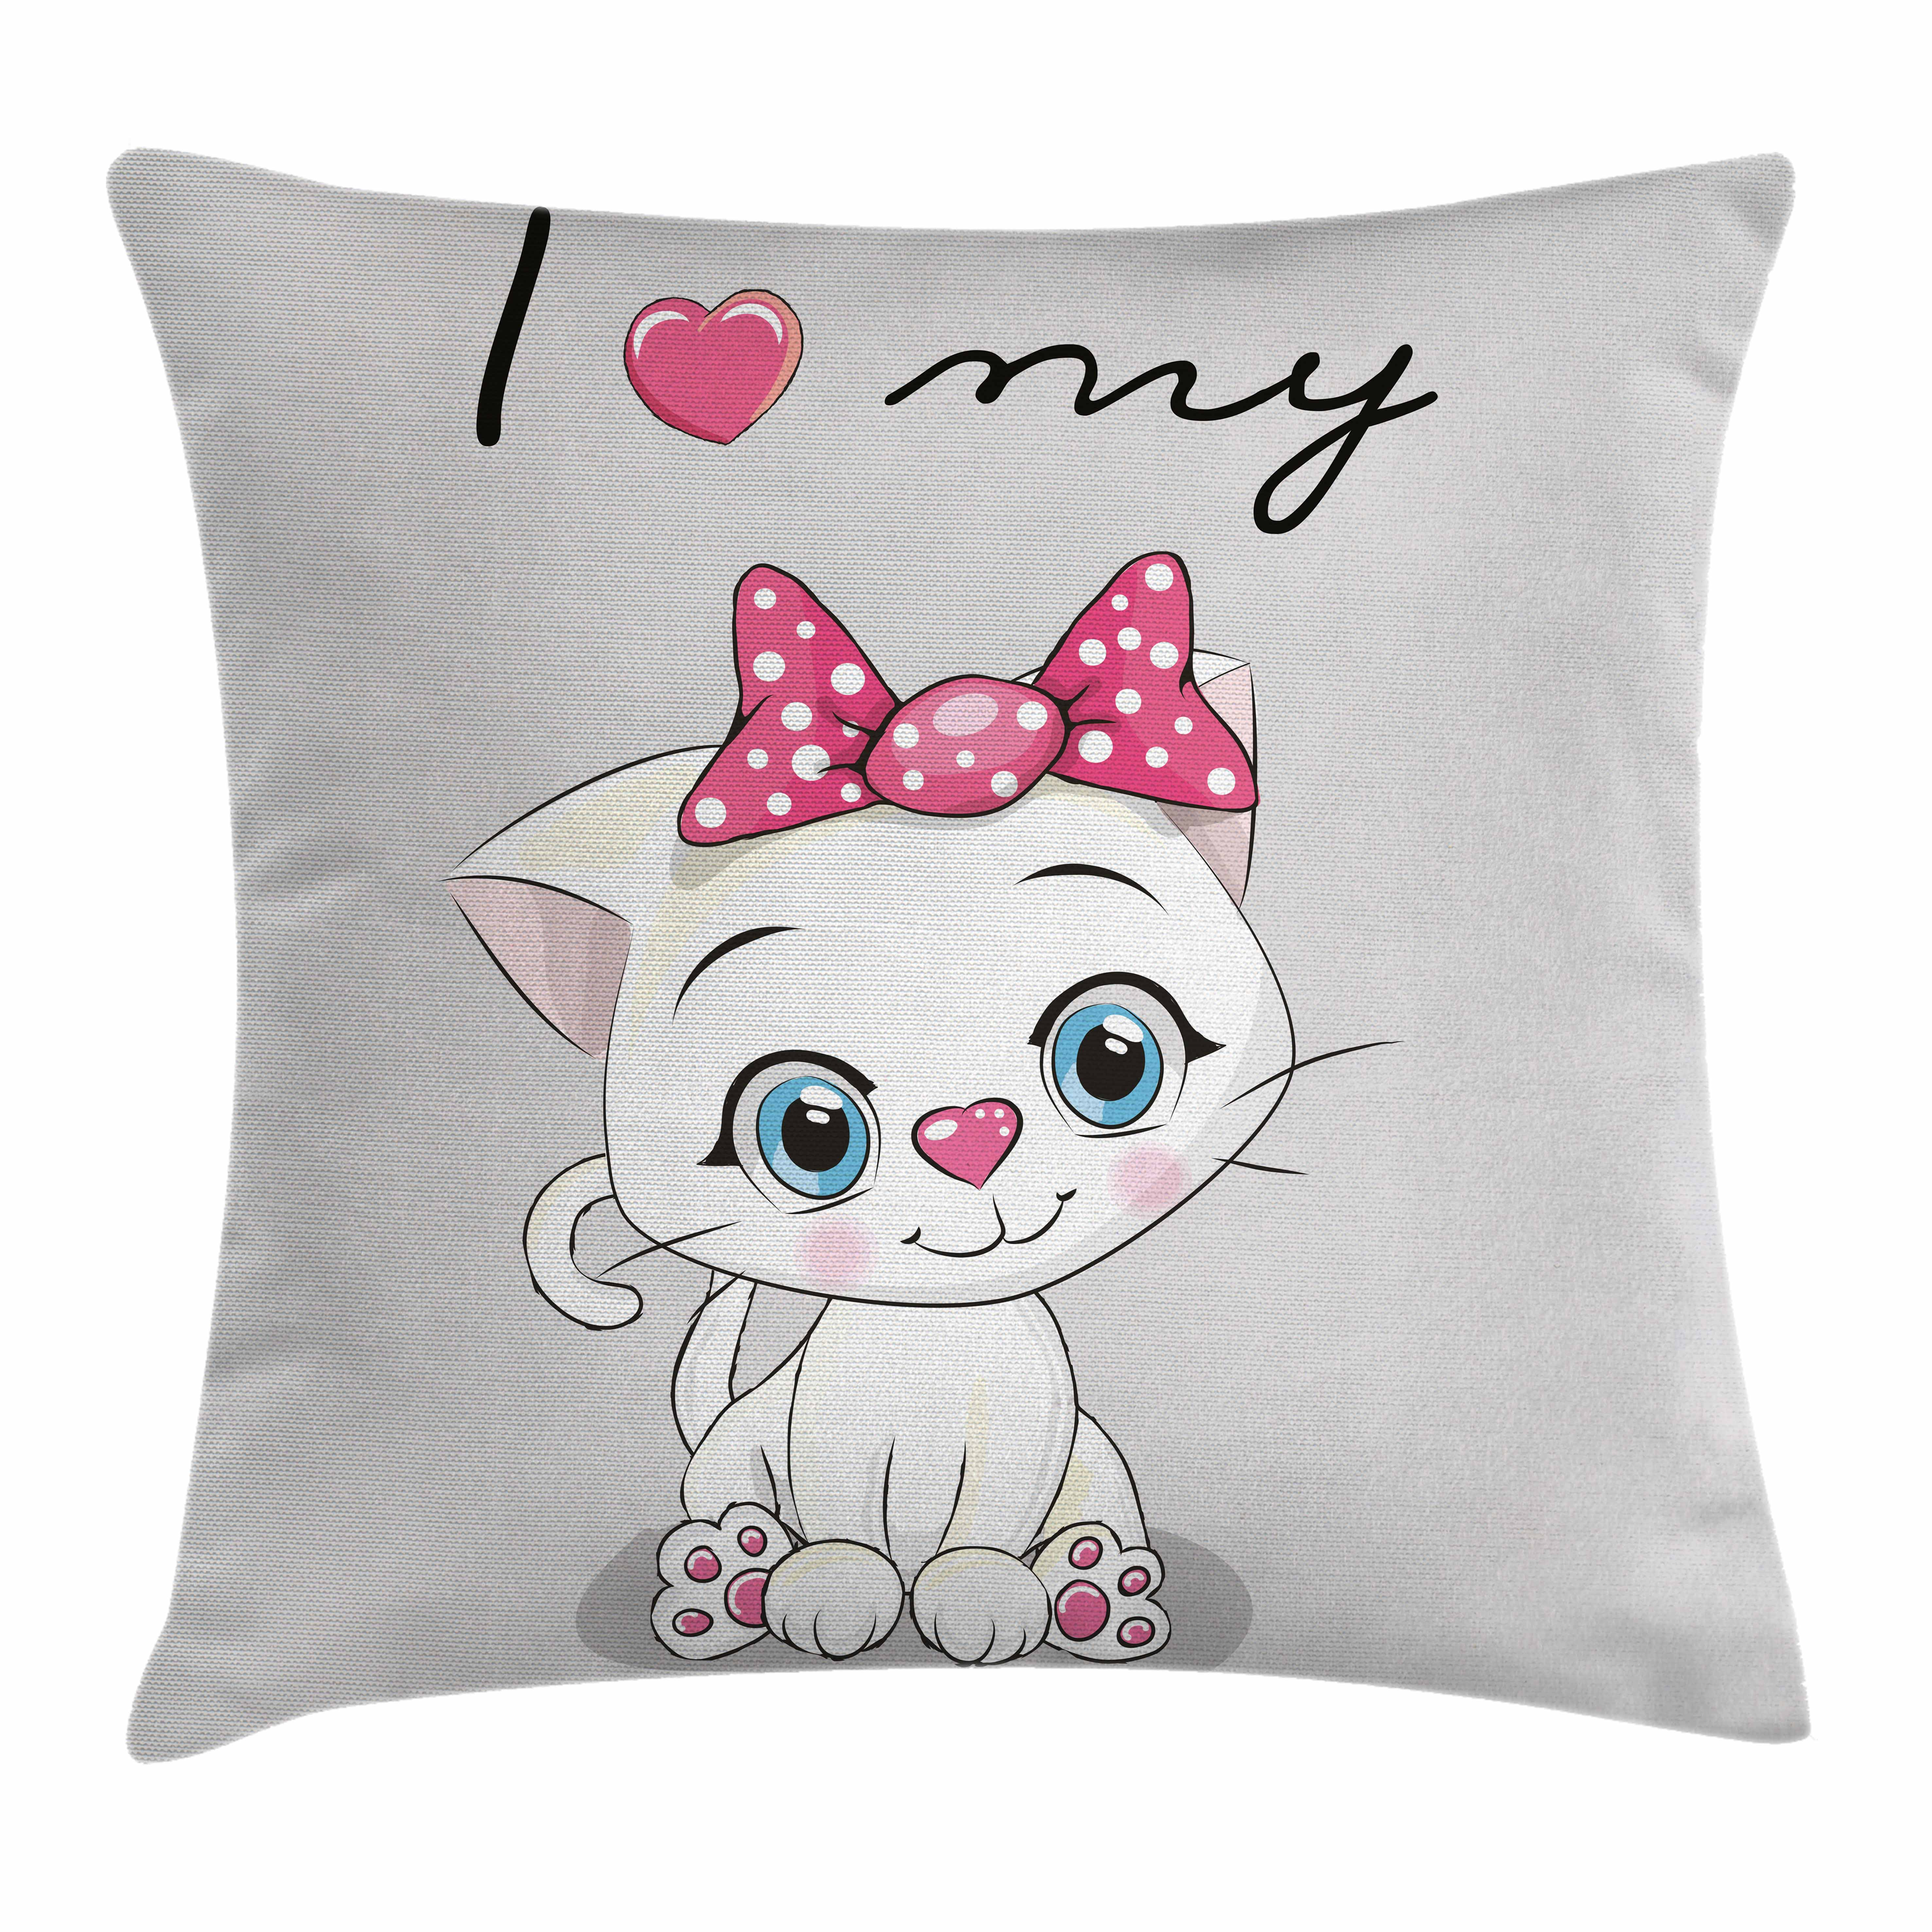 Kitten Throw Pillow Cushion Cover, Cute Cartoon Domestic White Cat Pink Cheeks Fluffy I Love My Pet Themed Print, Decorative Square Accent Pillow Case, 16 X 16 Inches, Grey White Pink, by Ambesonne